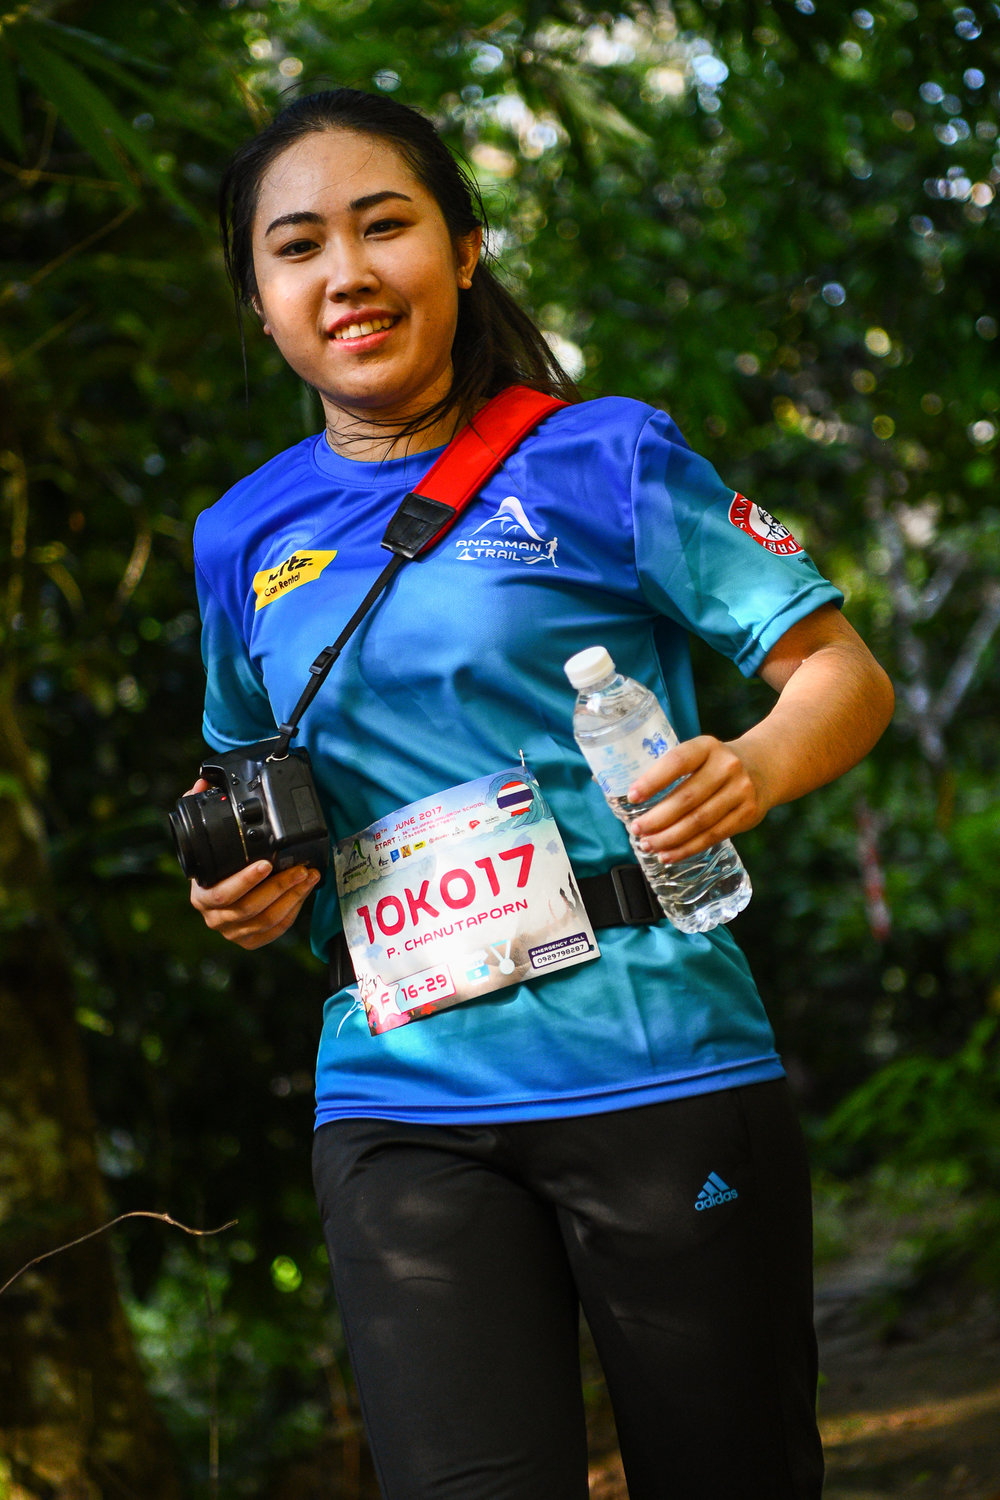 PHUKET, THAILAND - JUNE 18: Participants coming down the Andaman Trails 2017 on June 18, 2017 at Ban Bang Niew Dam Reservoir Project, Phuket, Thailand. (Photo by: Naratip Srisupab/Thailand Photo SEALs Sports Photography)